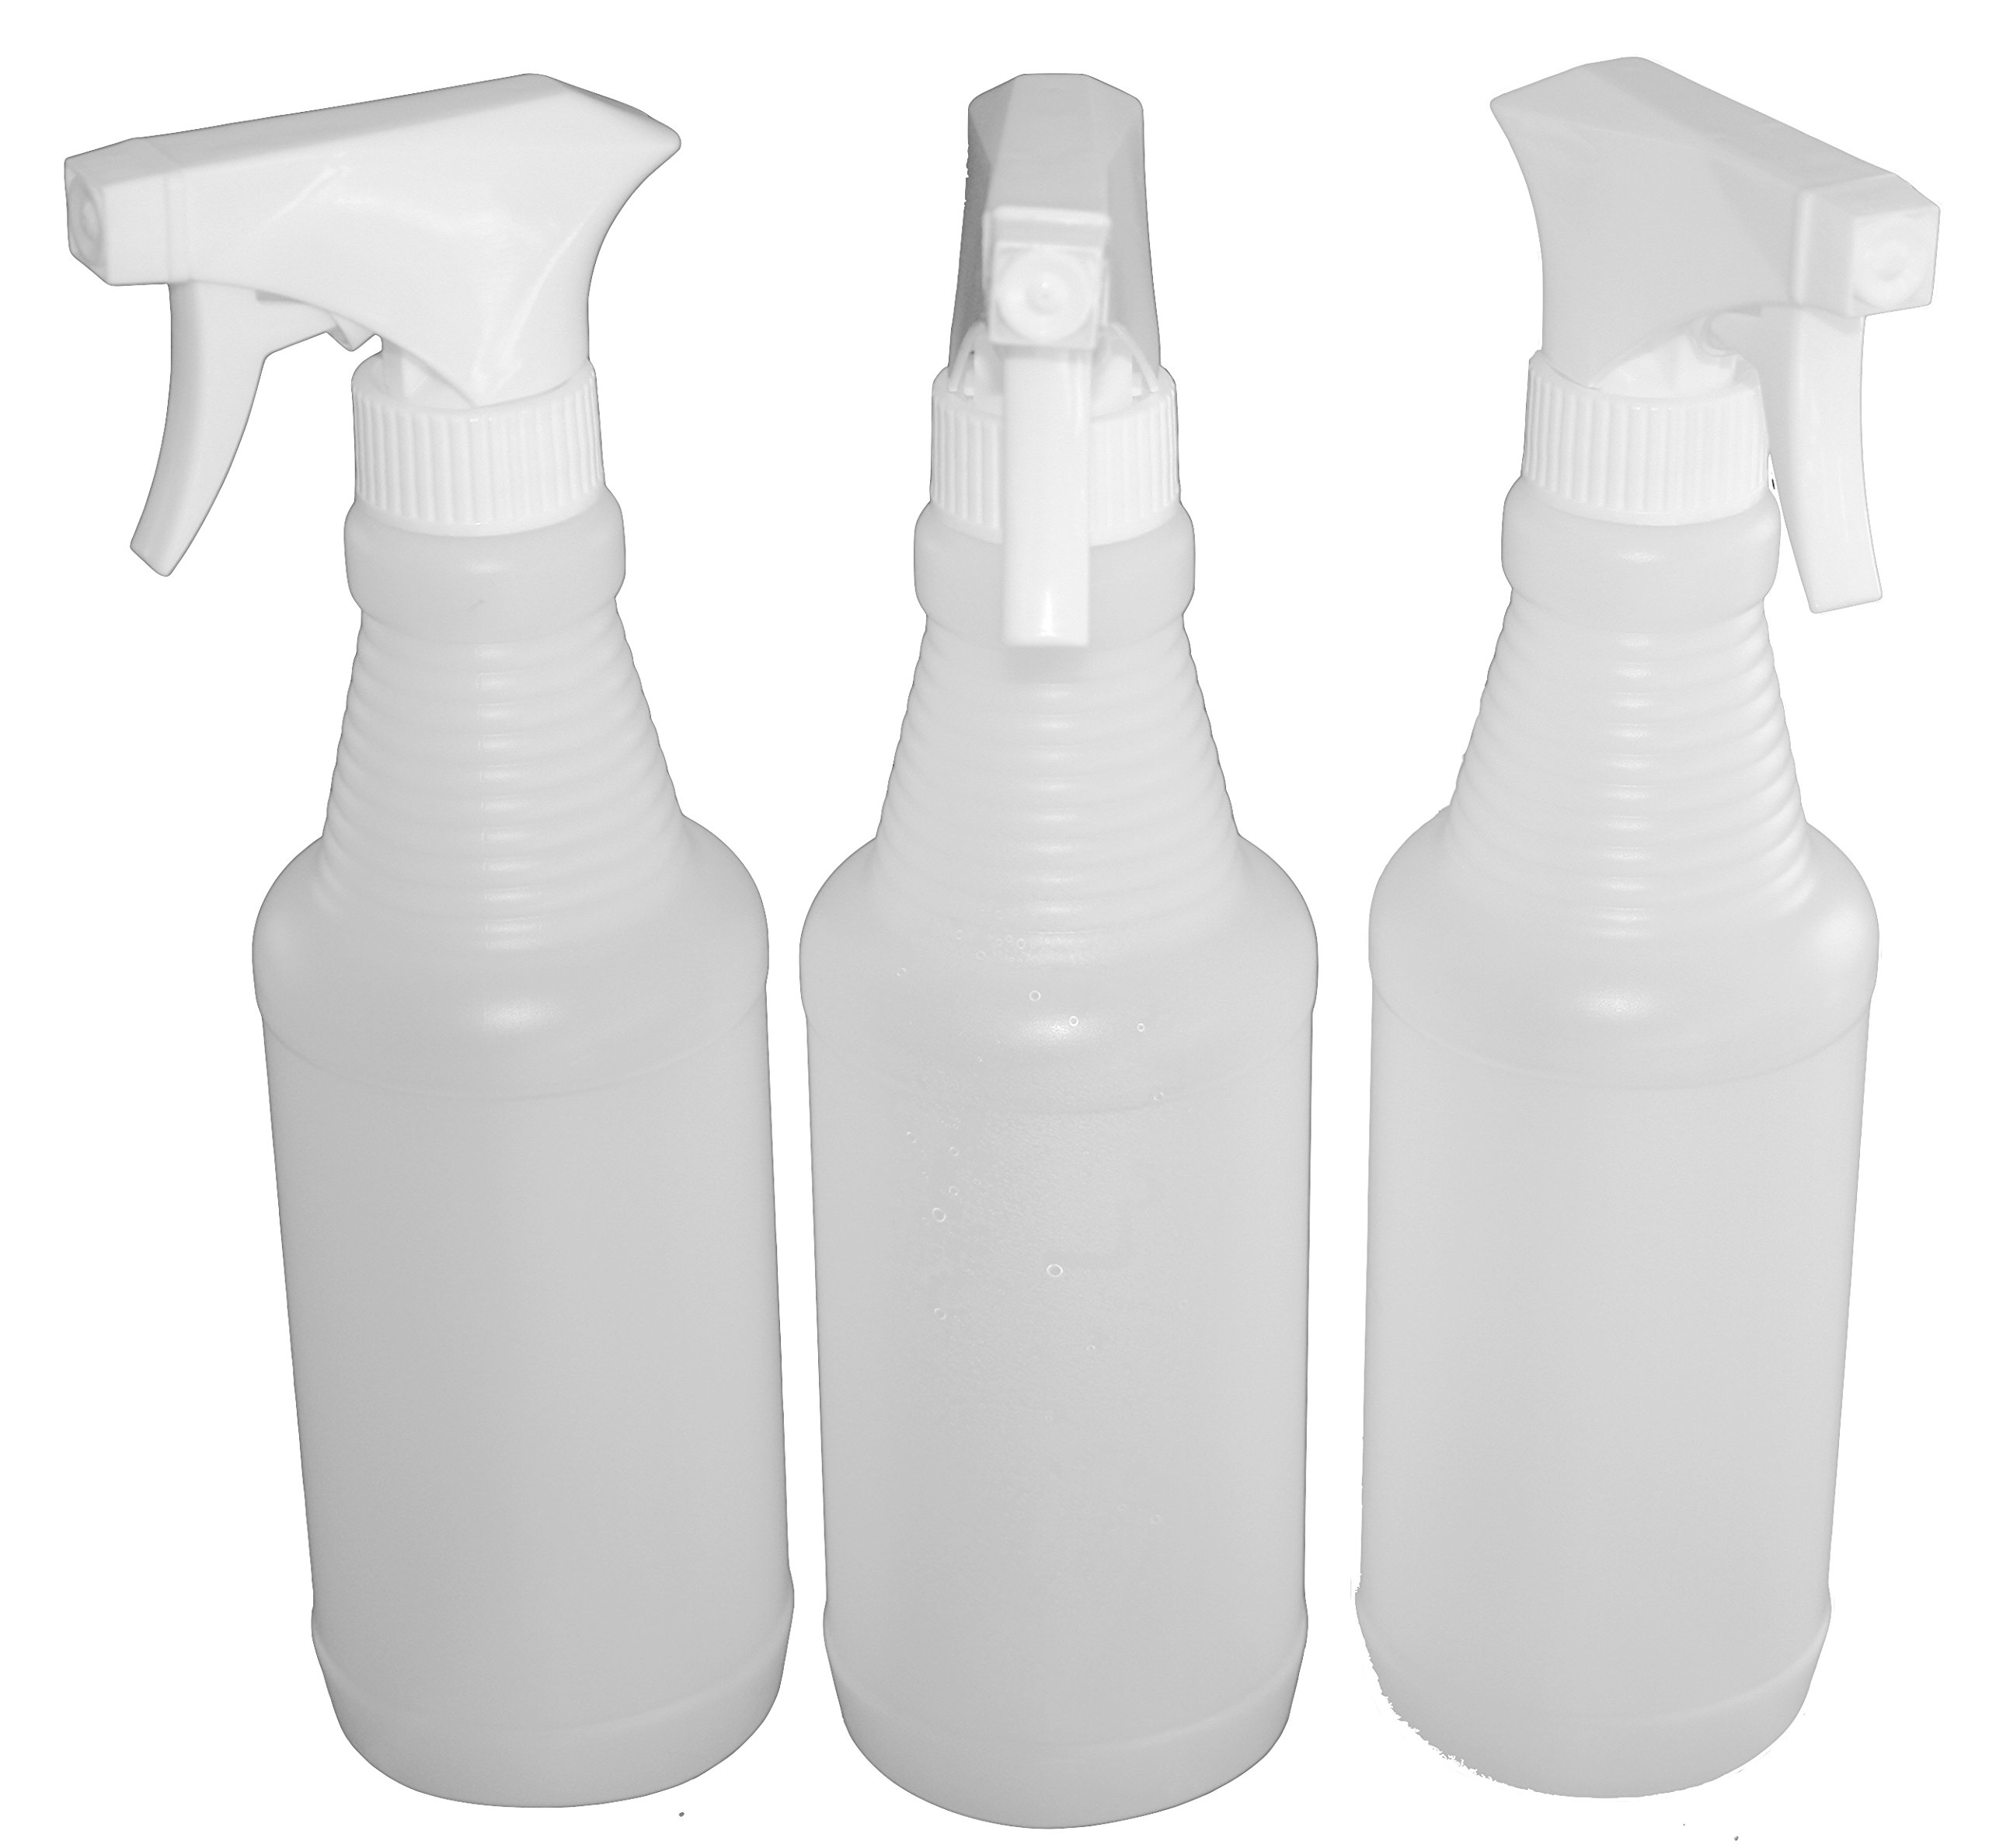 J&S Empty Spray Bottles - 16 Oz - (3 Pack) BPA Free with Mist or Stream and an Easy Squeeze Trigger – Professional Strength All Purpose Commercial or Home Use Sprayer Bottle